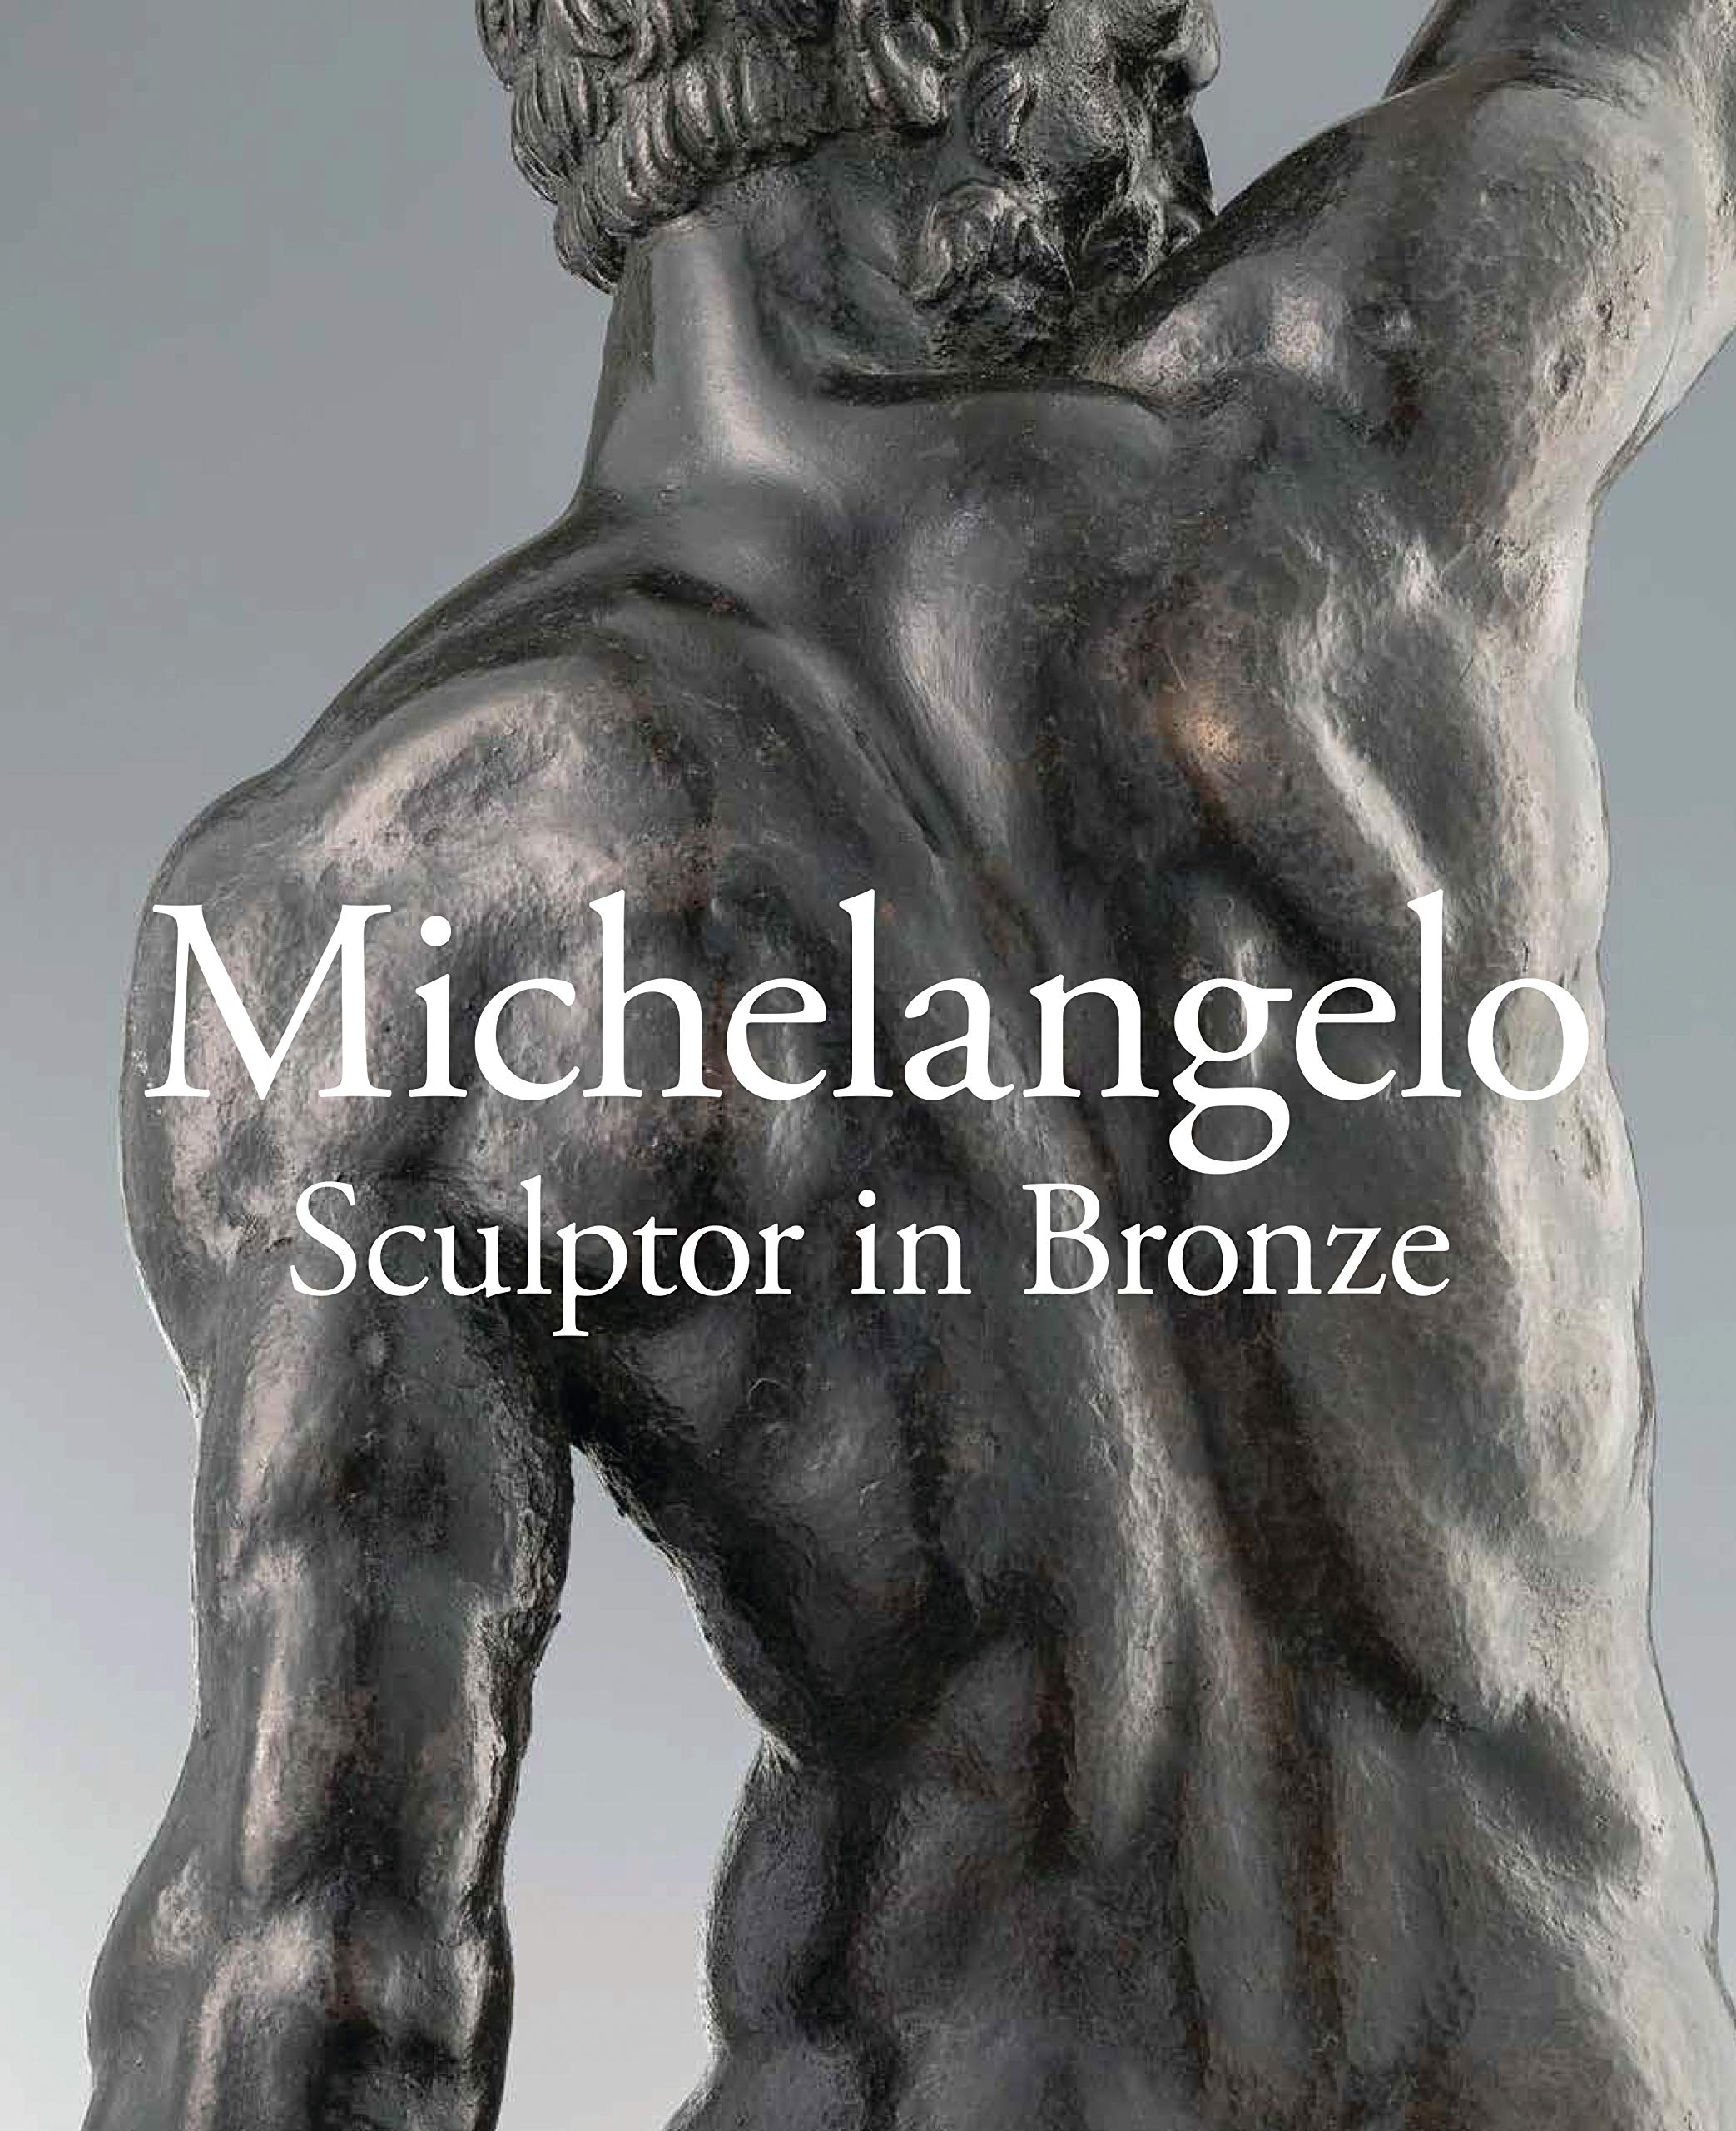 michelangelo the sculptor volume 1 text